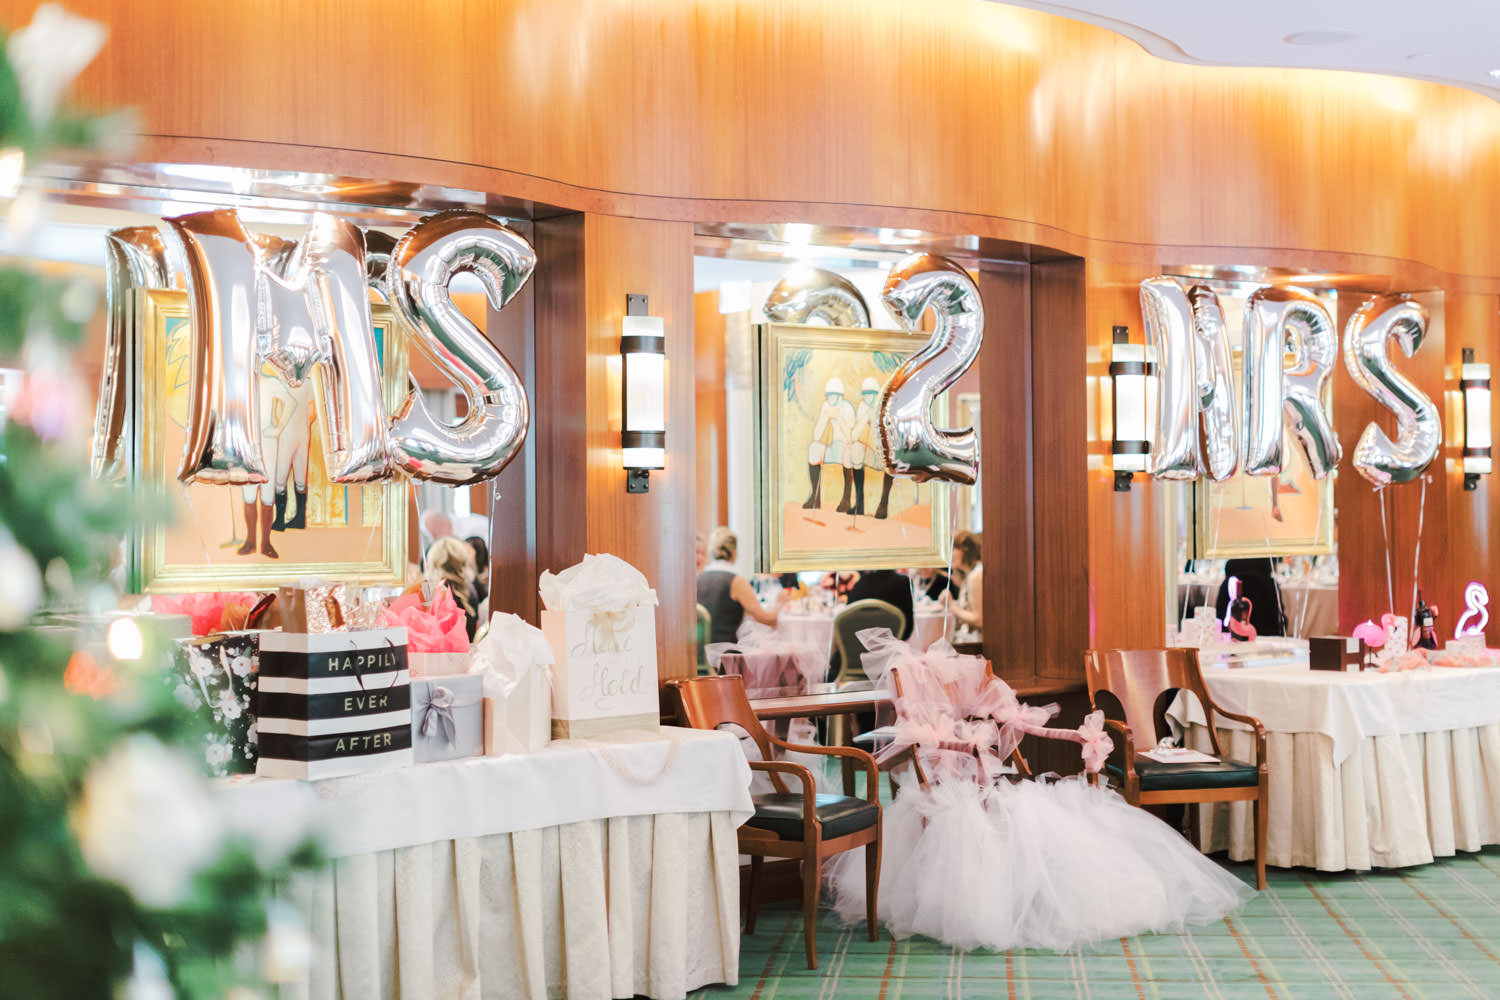 Ms 2 Mrs balloons, Chic Beverly Hills Hotel Bridal Shower table with pink linens and pops of ivory and red in Los Angeles during Christmas decorations, Cavin Elizabeth Photography